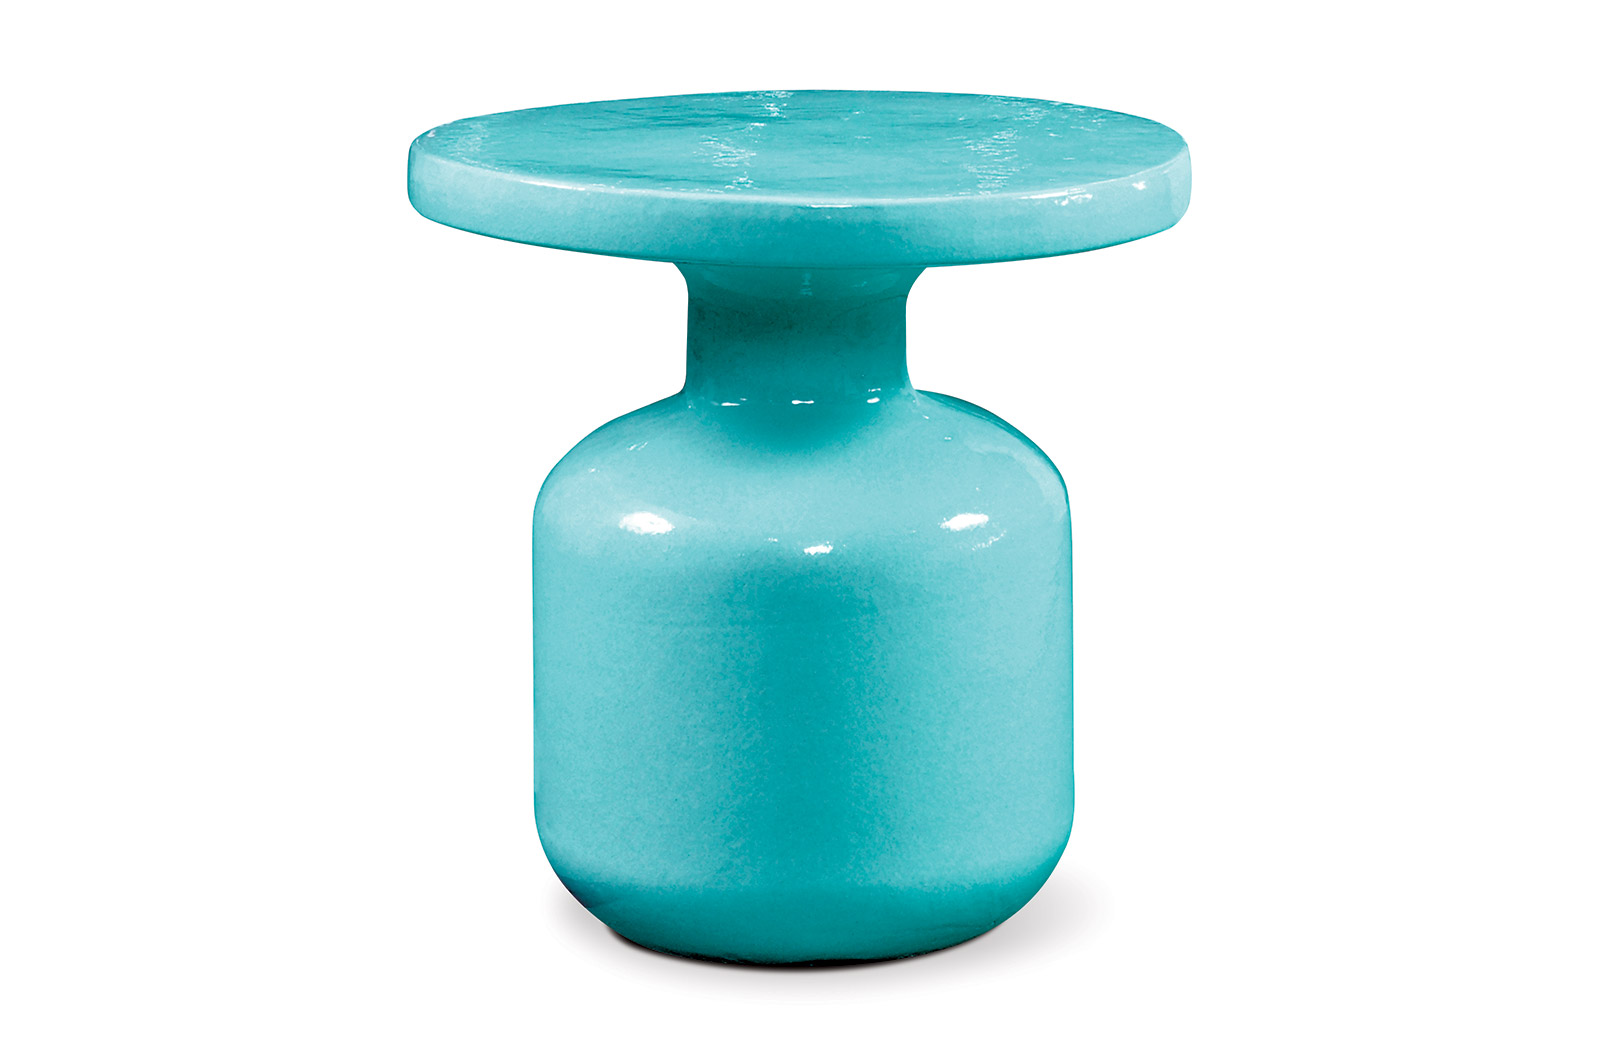 ceramic bottle accent table cer web teal olympia furniture red lamp clear plastic tablecloth tread plates wooden door thresholds small half moon target makeup vanity marble and